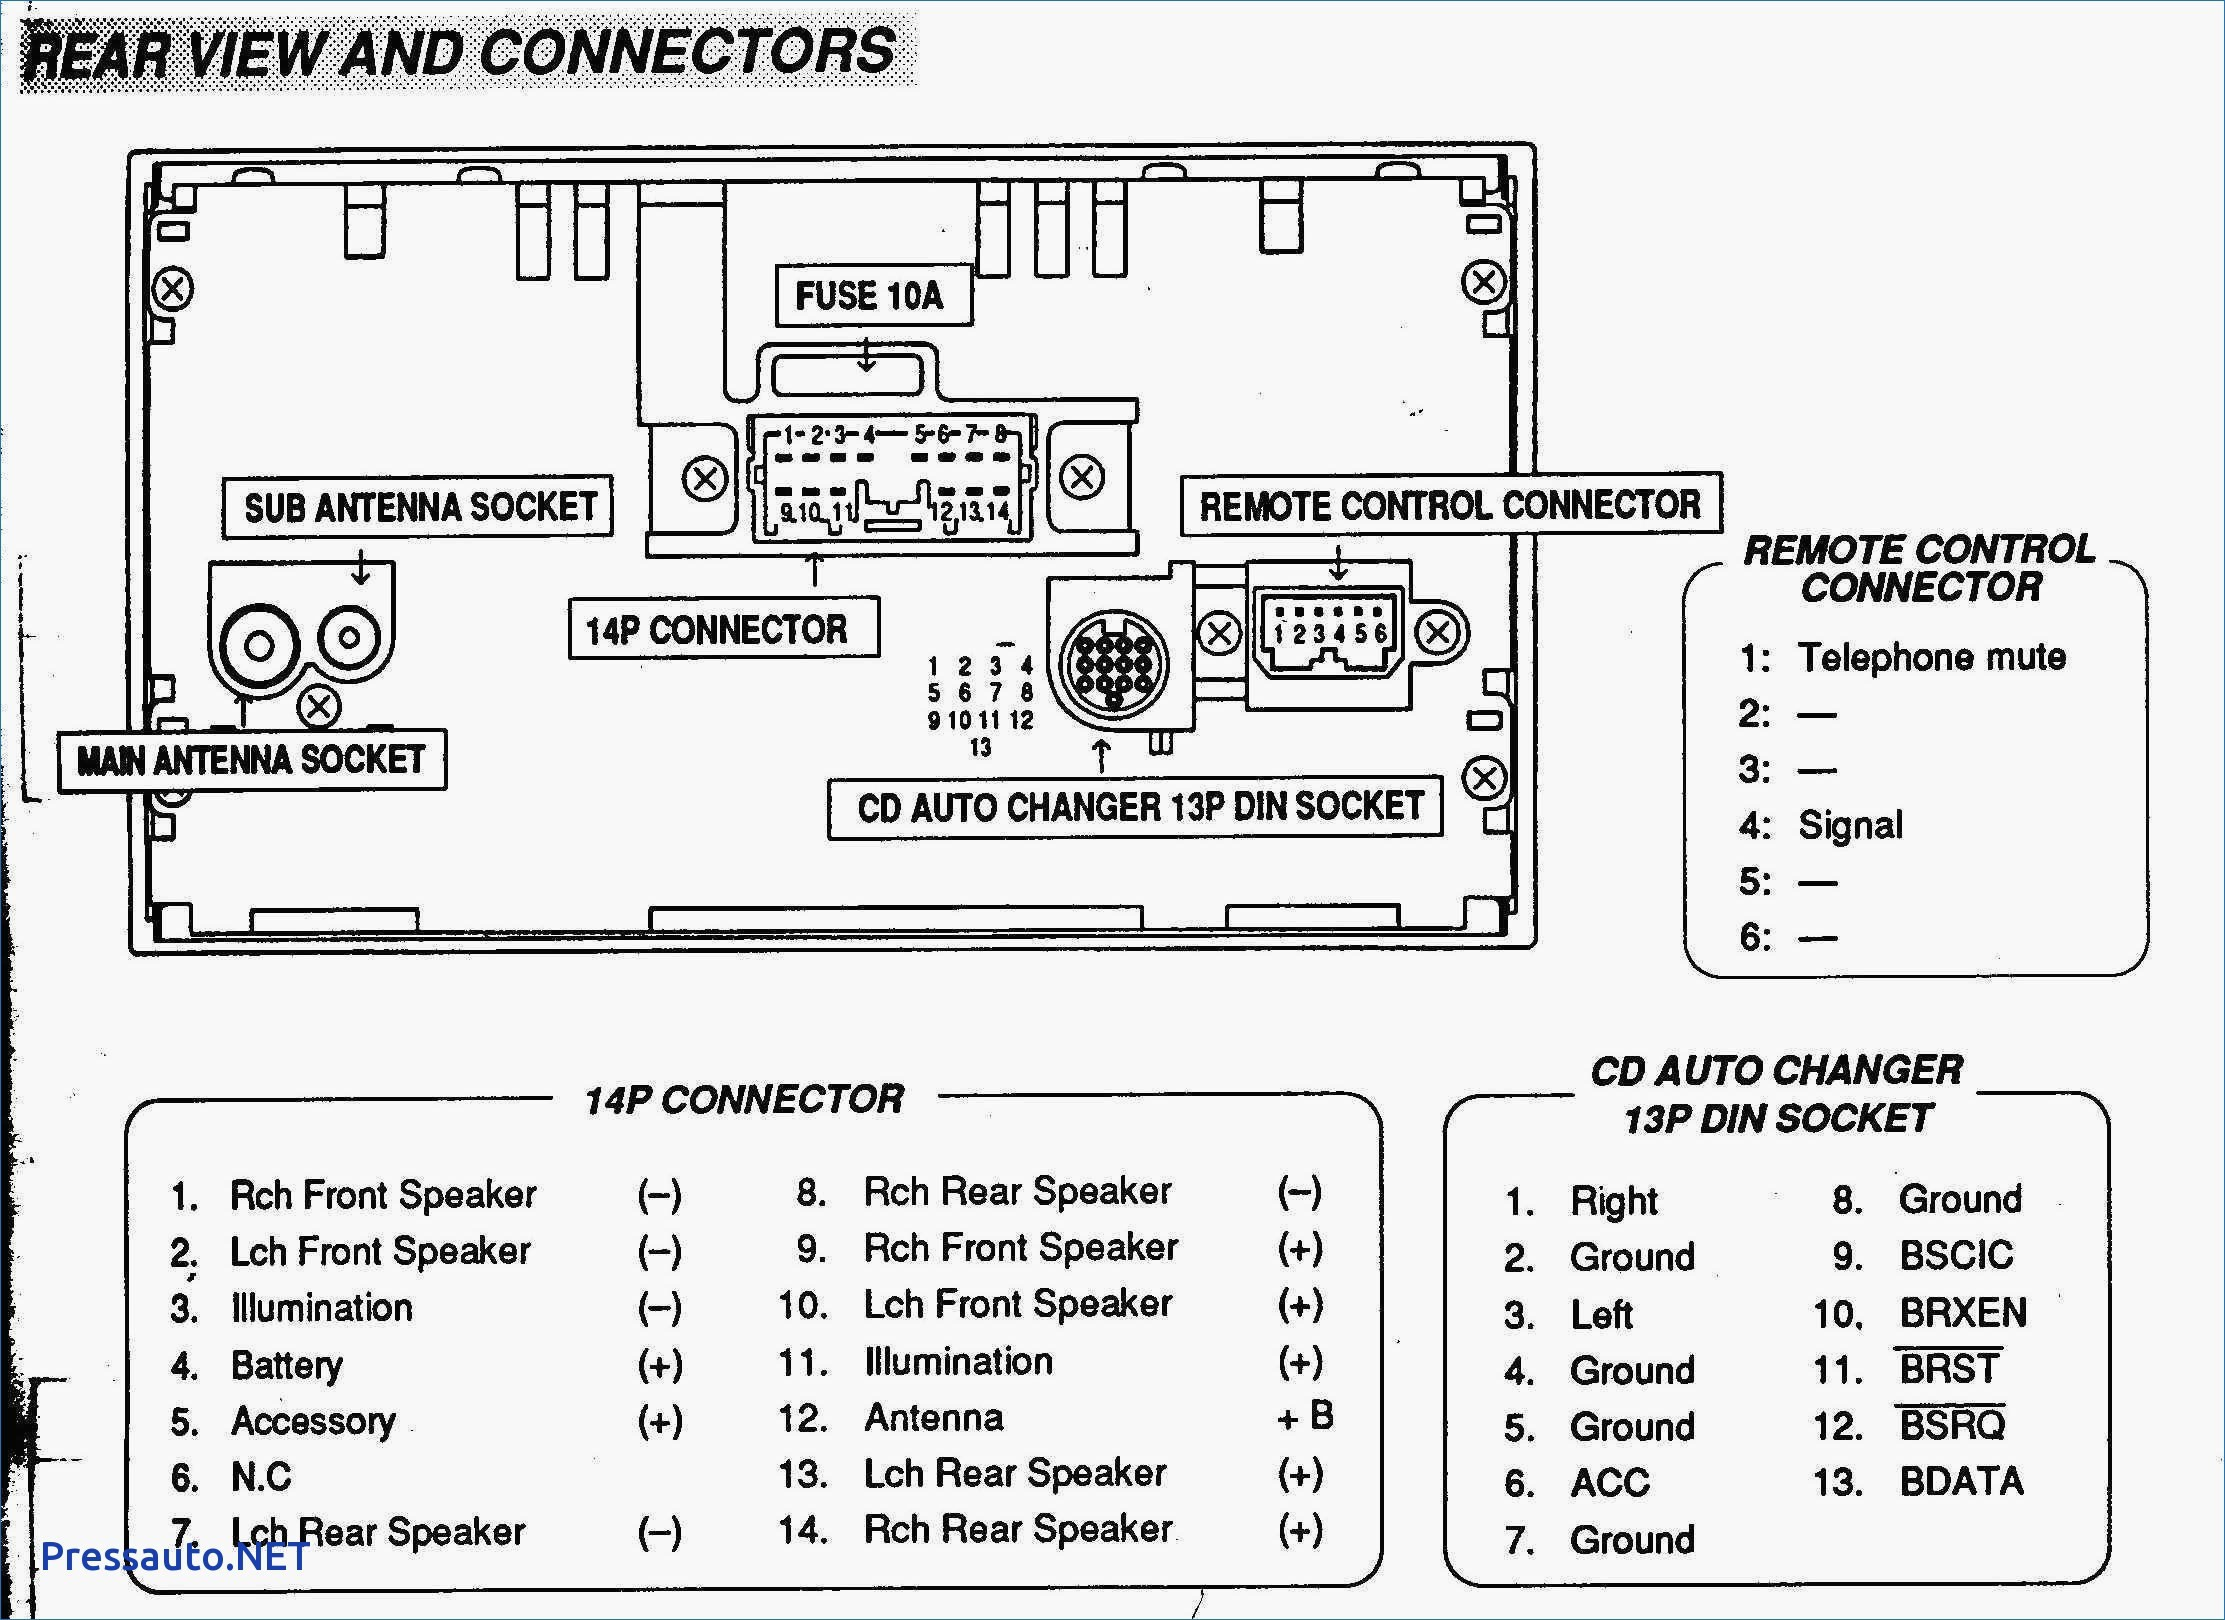 2000 Volkswagen Passat Engine Diagram 2001 Passat Fuse Box Another Blog About Wiring Diagram • Of 2000 Volkswagen Passat Engine Diagram Vw Golf 4 Climatronic Wiring Diagram Inspirational 2000 Vw Passat